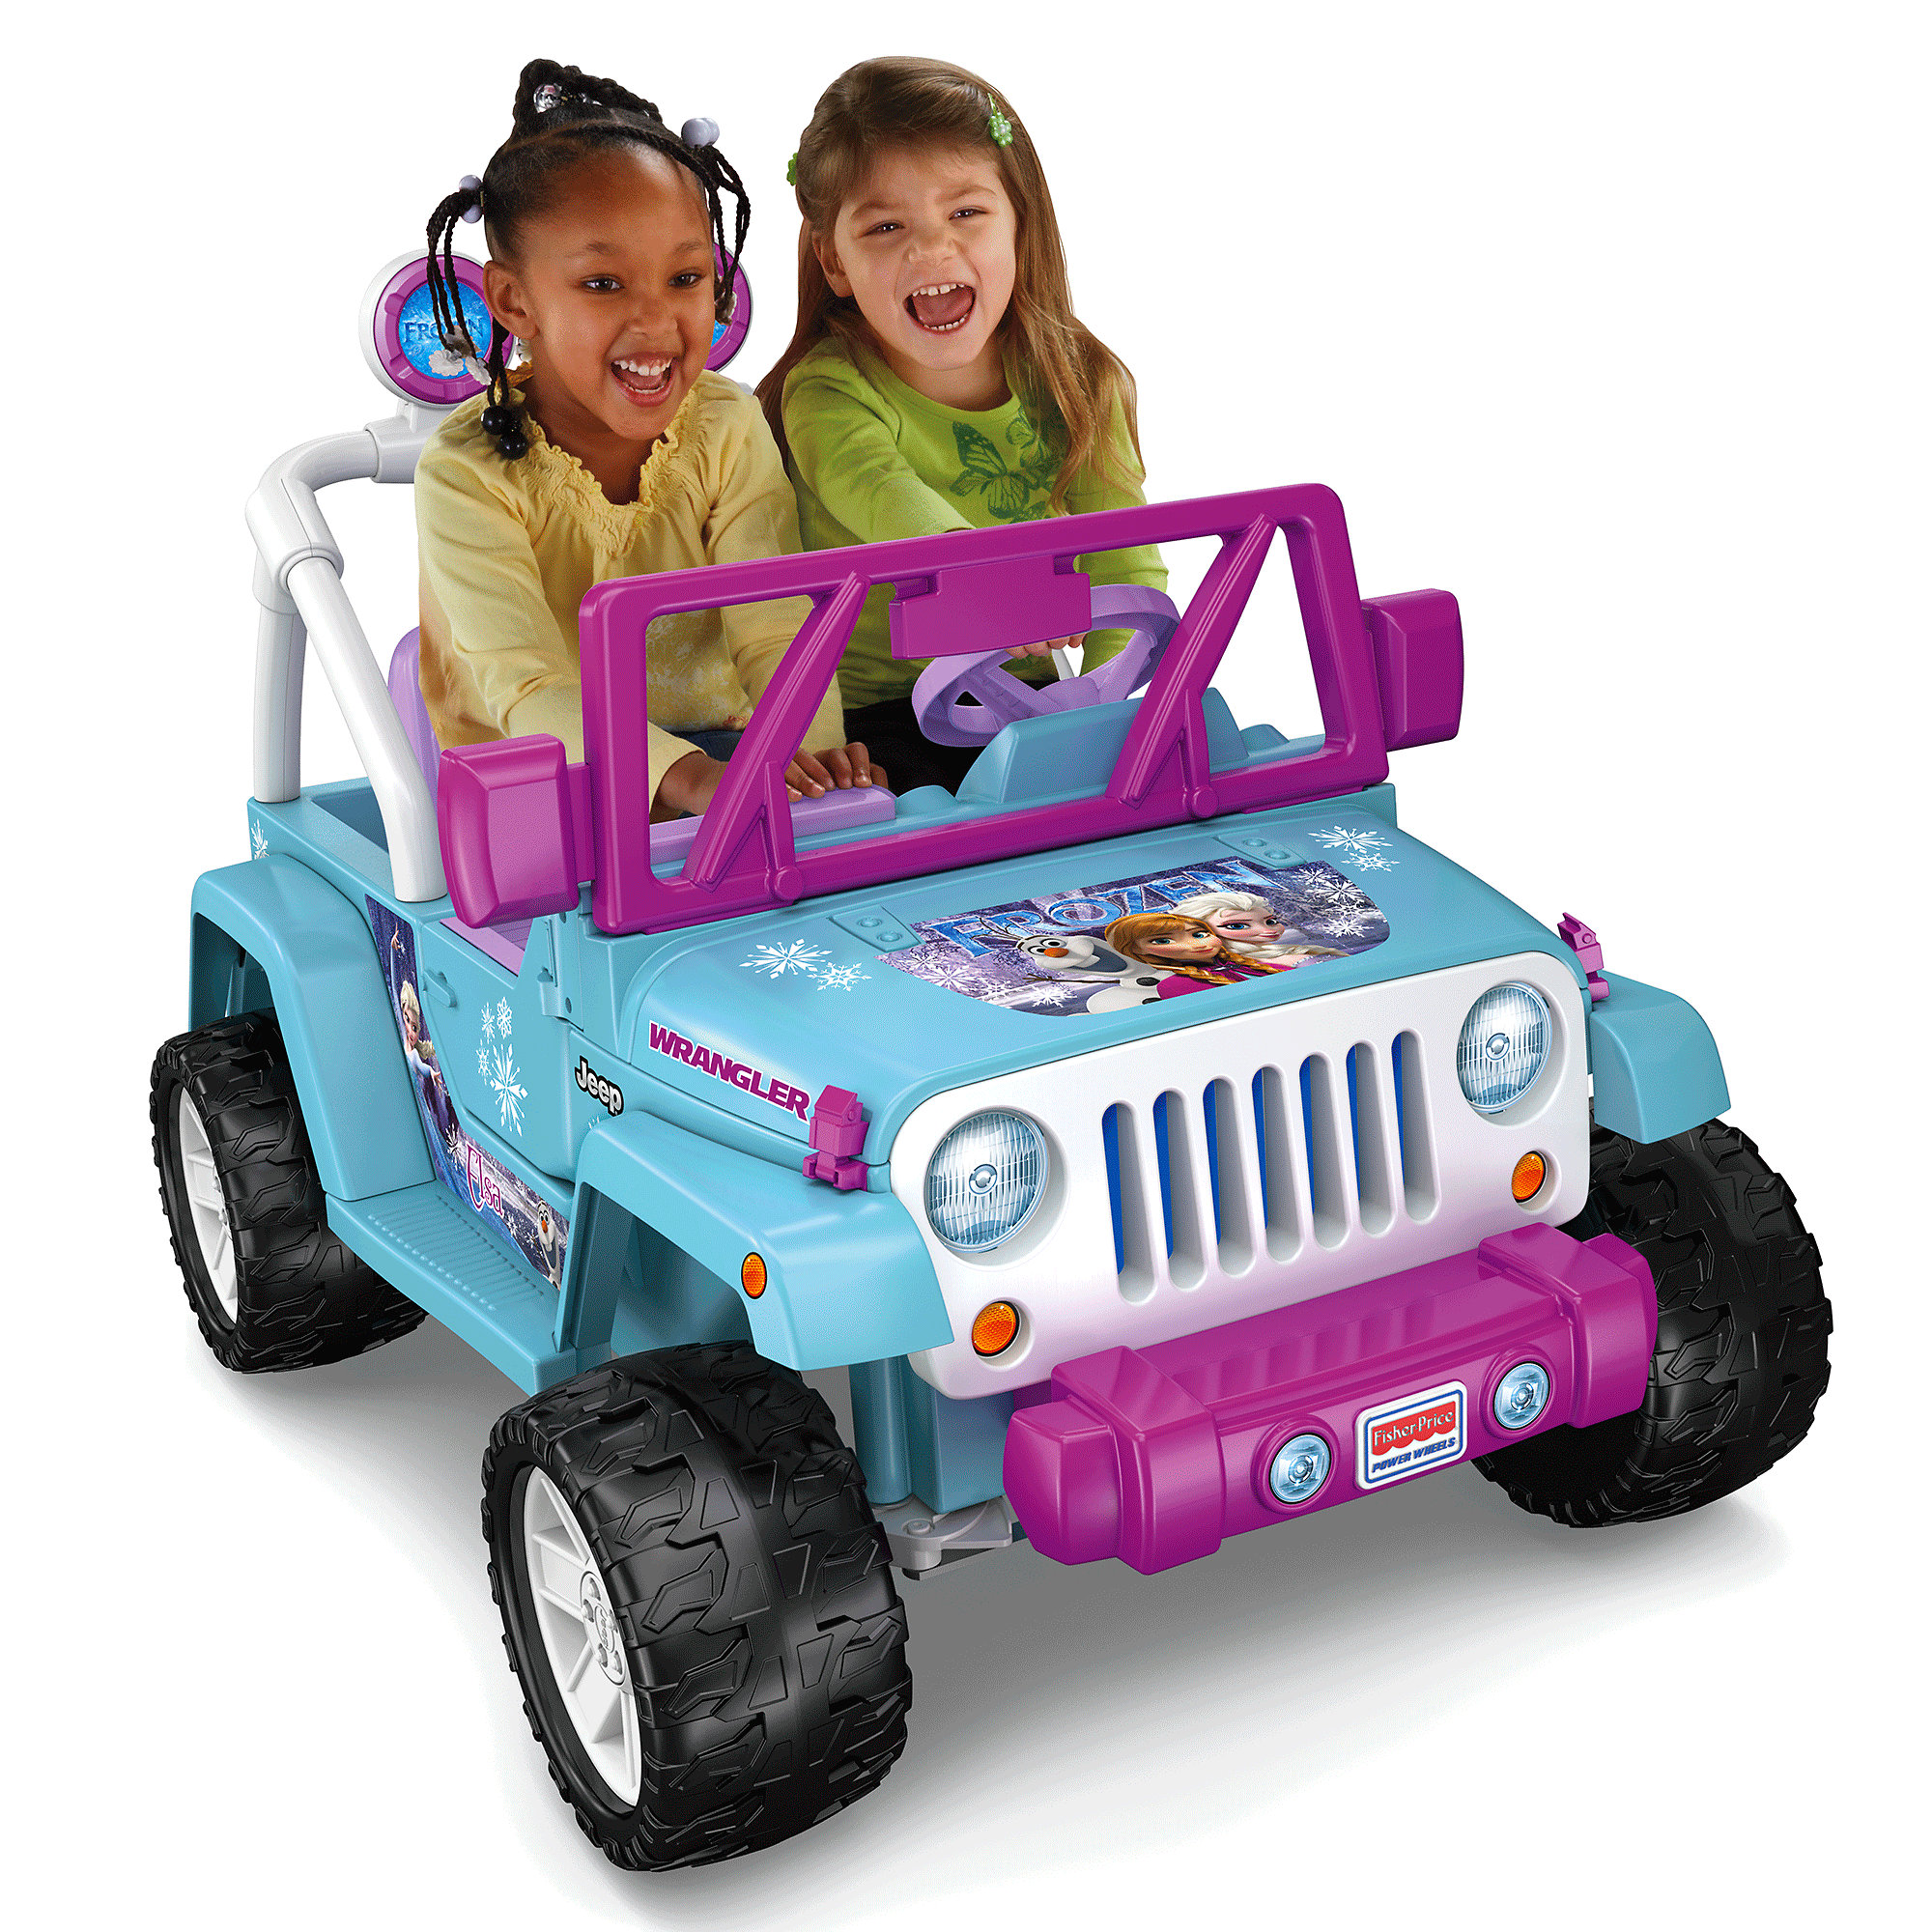 Power Wheels Disney Frozen Jeep Wrangler 12-Volt Battery-Powered Ride-On by Mattel